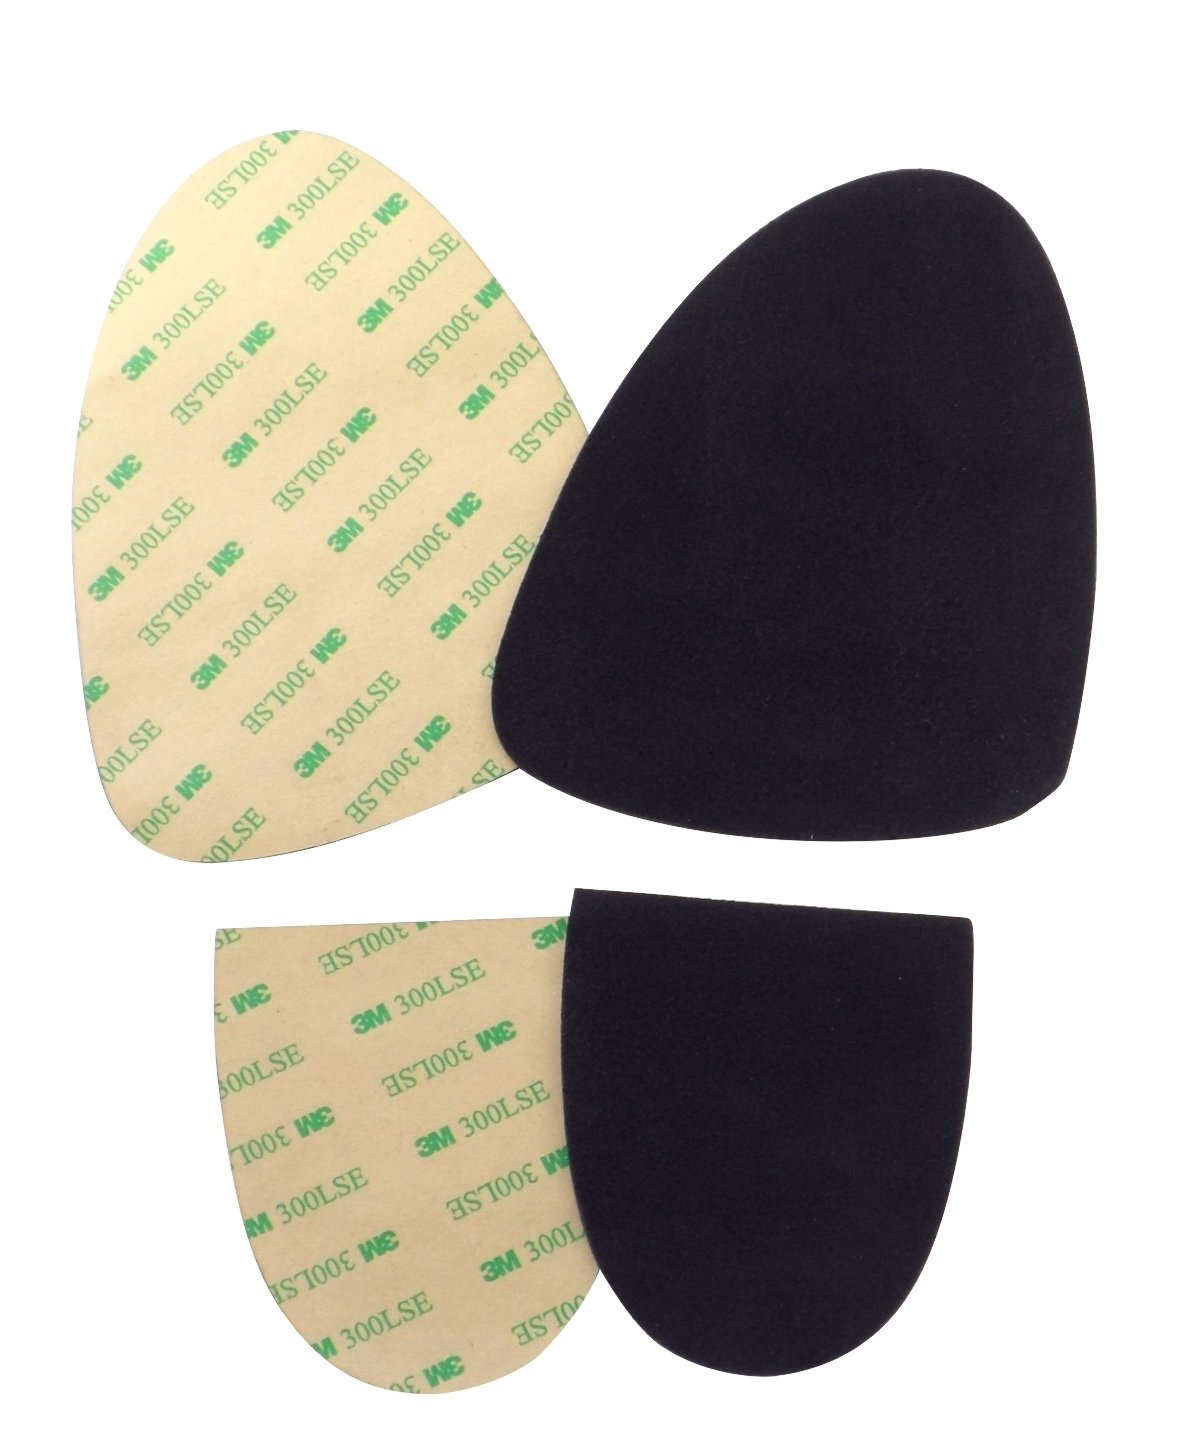 Stick-on Suede Soles with Industrial-Strength Adhesive Backing. Resole Old Dance Shoes or Turn Sneakers into Perfect Dance Shoes. [Suede-M-Black-Sport-r2] by Soles2dance